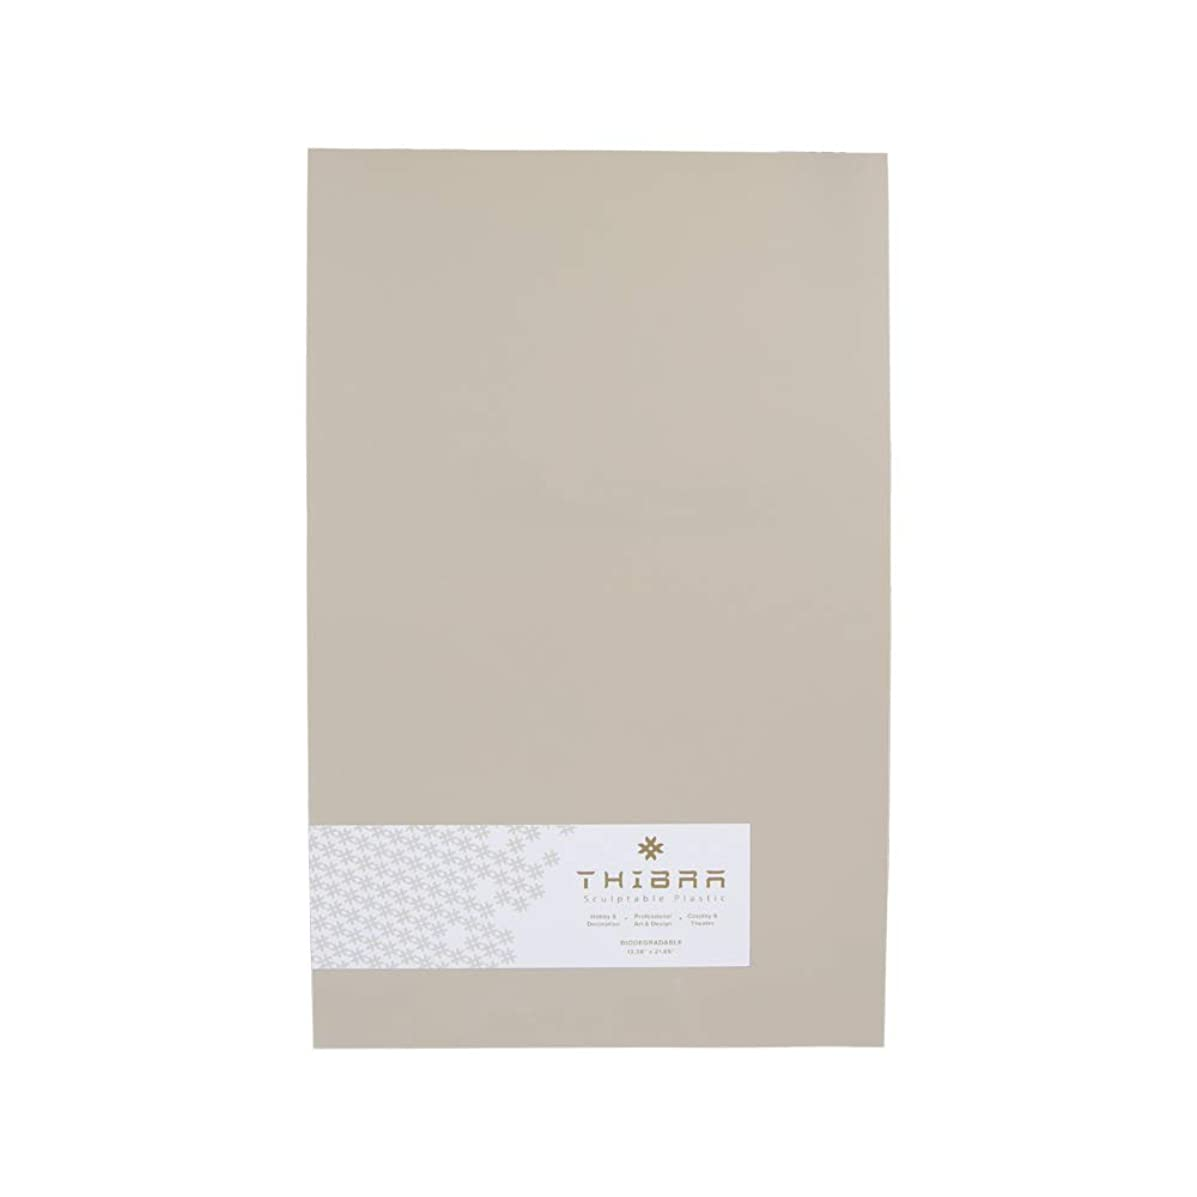 Thibra Thermoplastic | Reusable | Easy to Use Moldable Plastic Sheet | Ideal for cosplay, Hobby, Arts and Crafts | Size 13.4 X 21.6